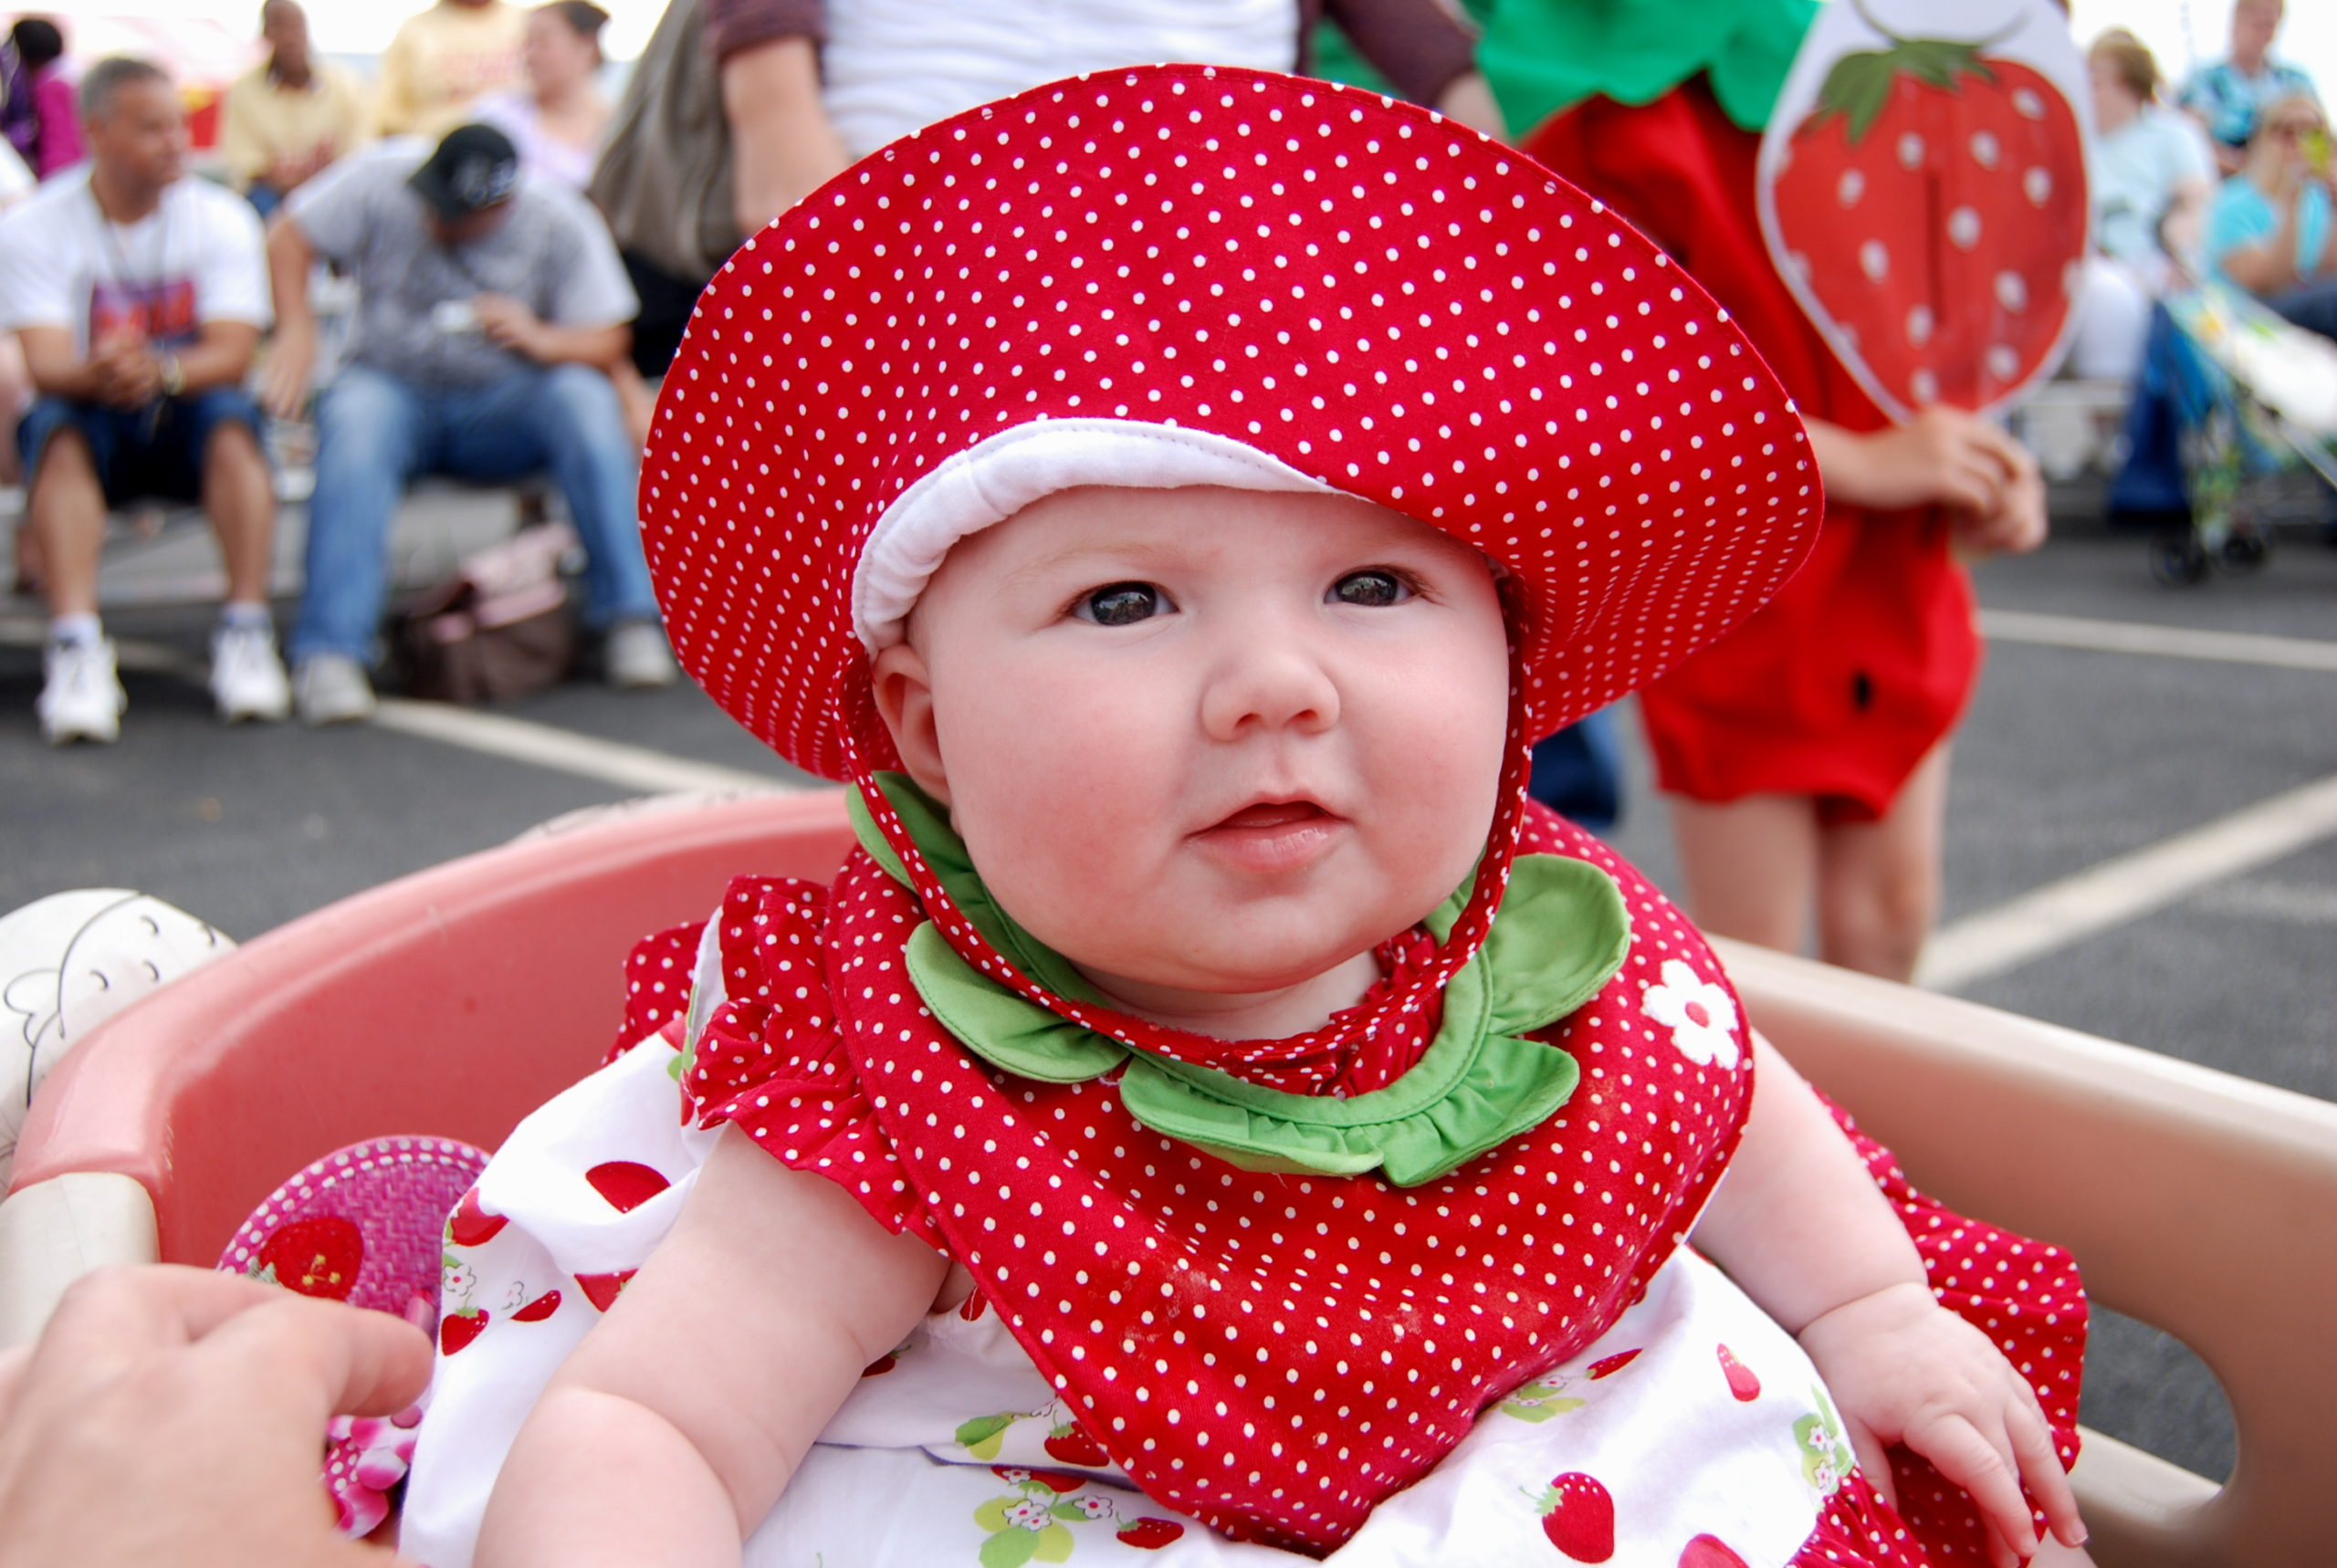 Celebrate National Strawberry Day by Supporting the 2018 Strawberry Festival